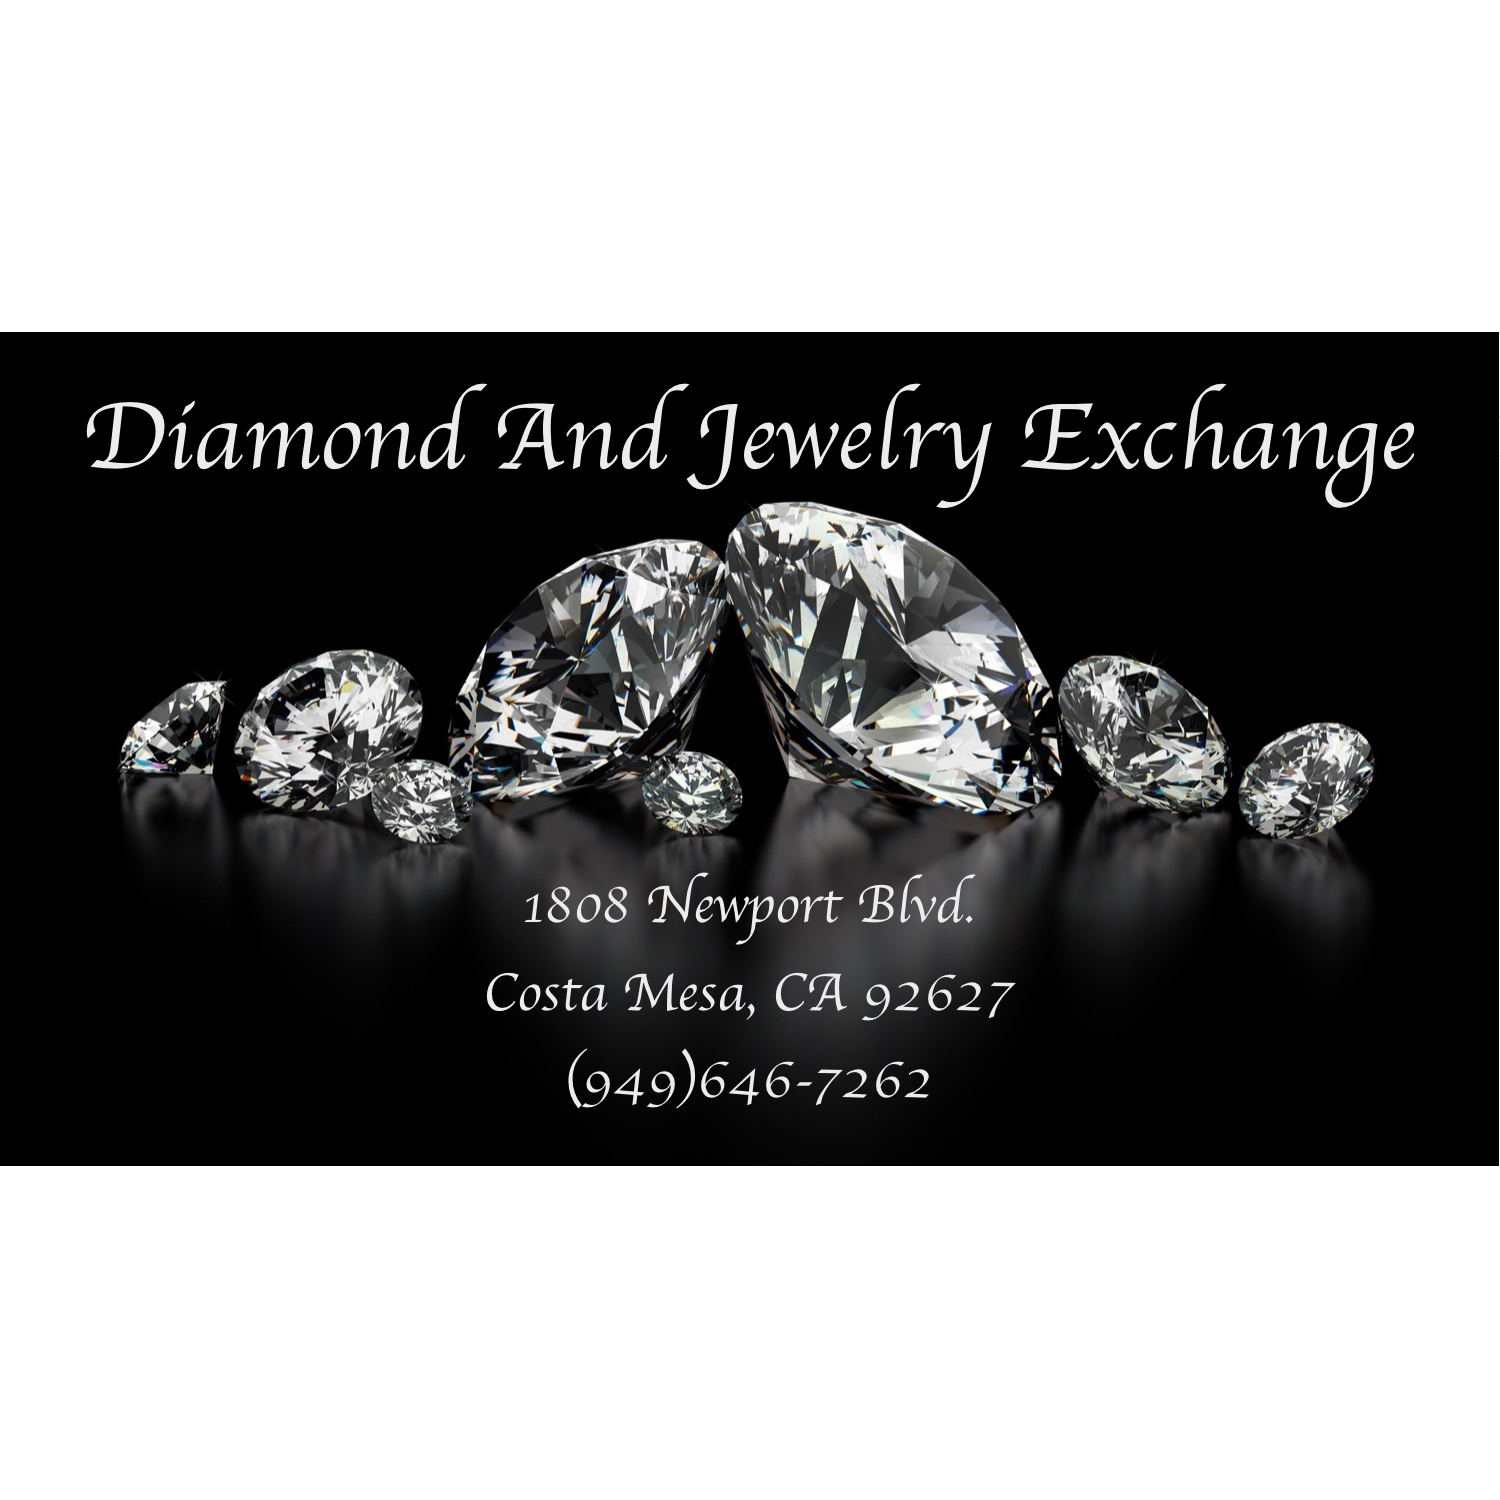 Diamond And Jewelry Exchange